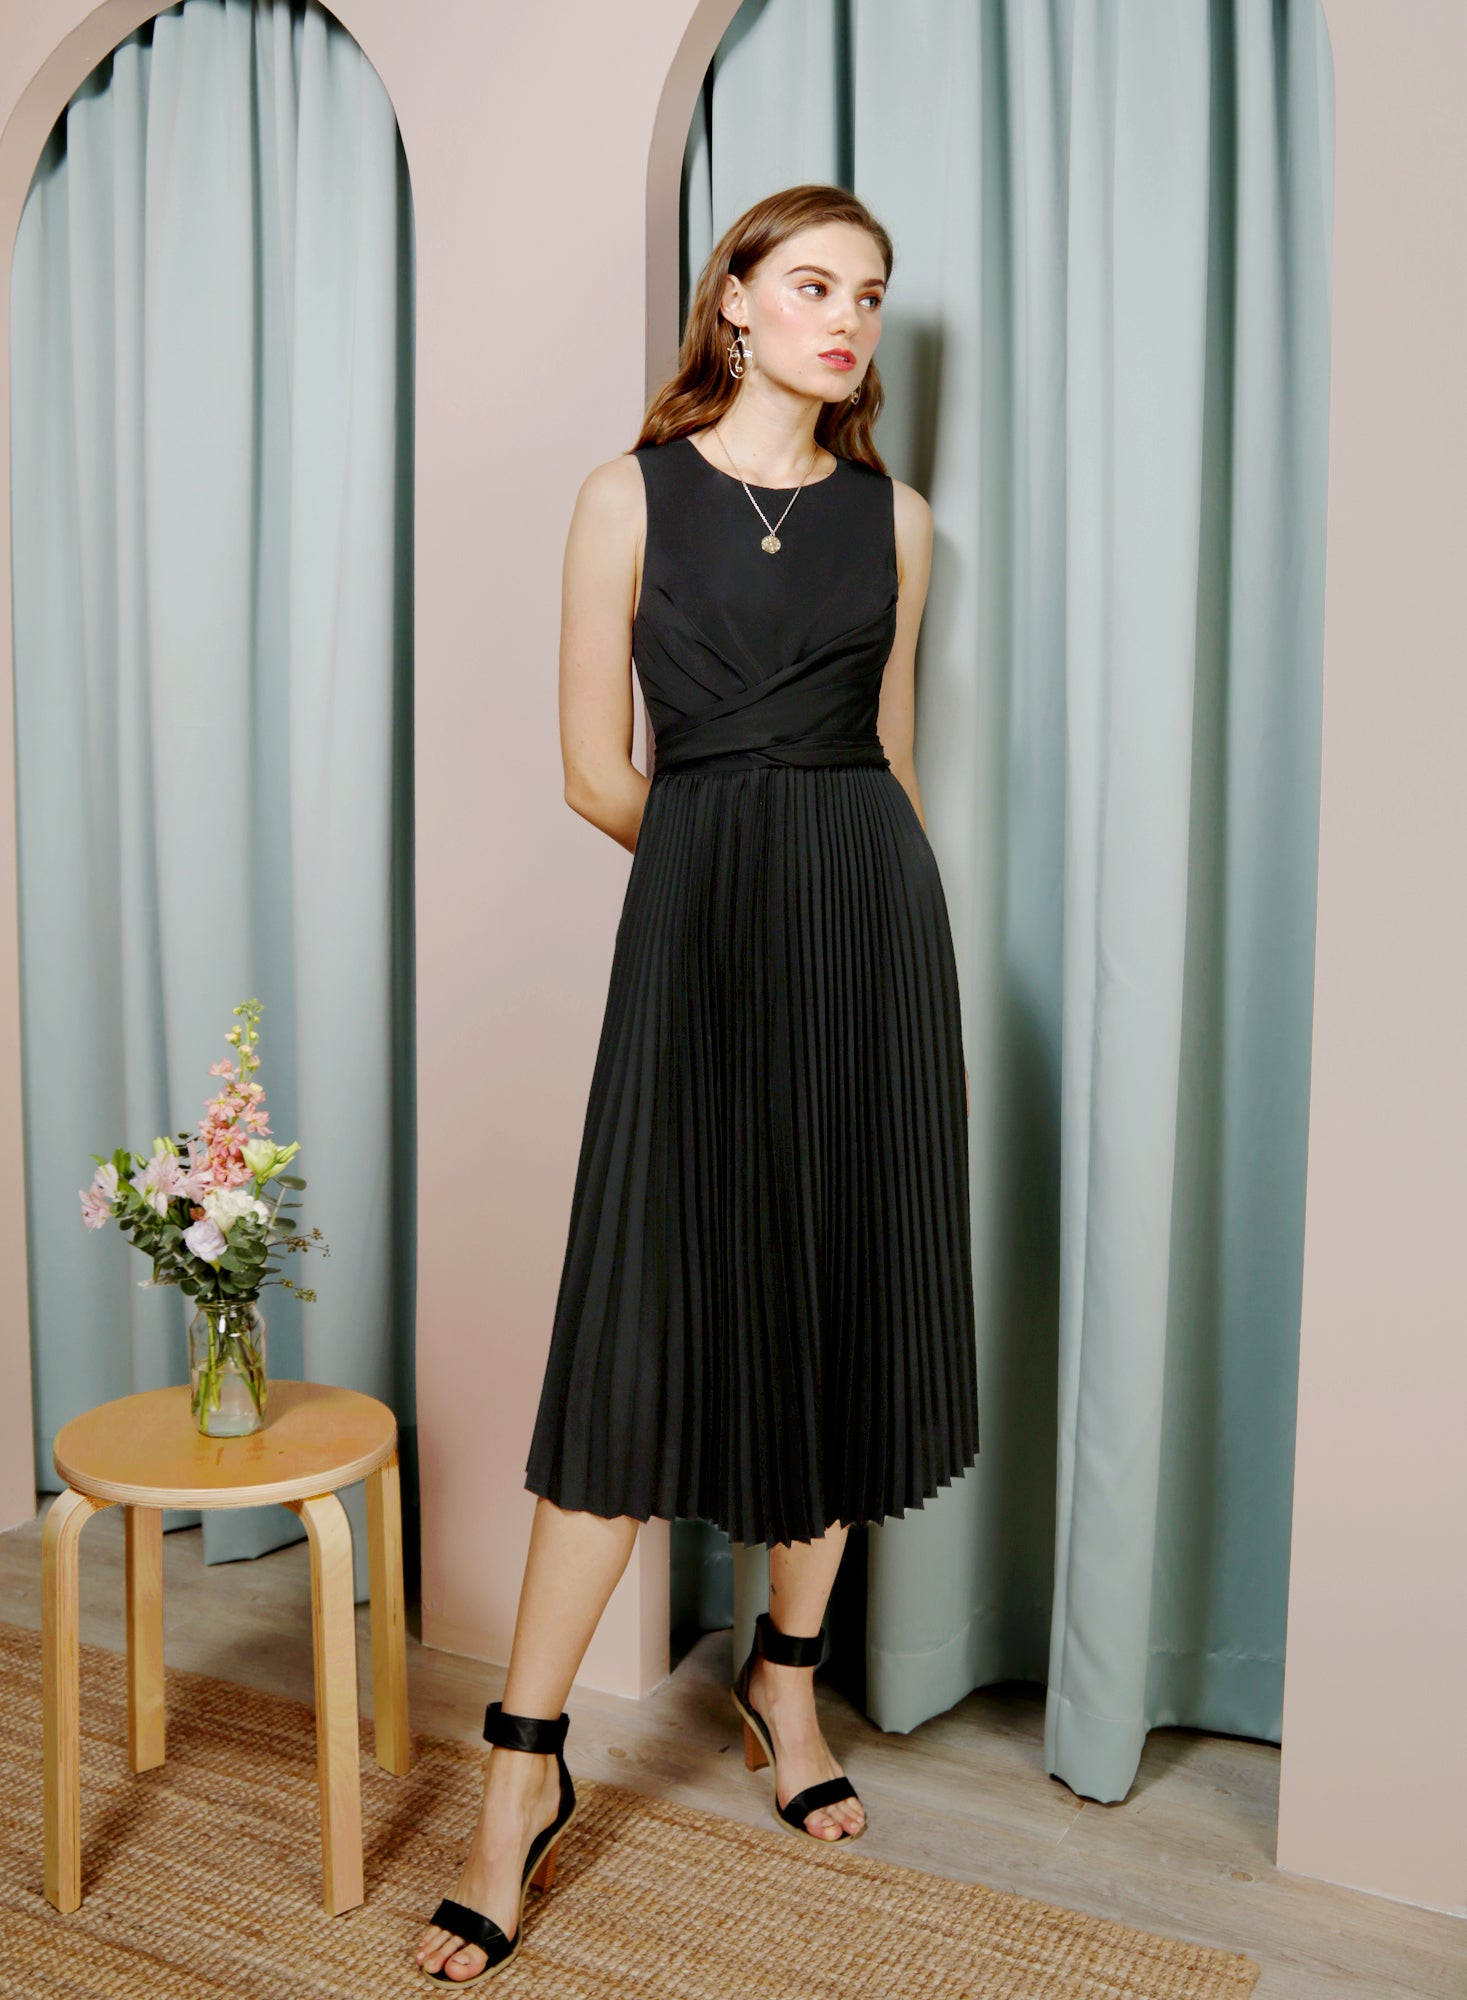 DIVINE Wrap Front Pleated Dress (Black) at $ 46.50 only sold at And Well Dressed Online Fashion Store Singapore